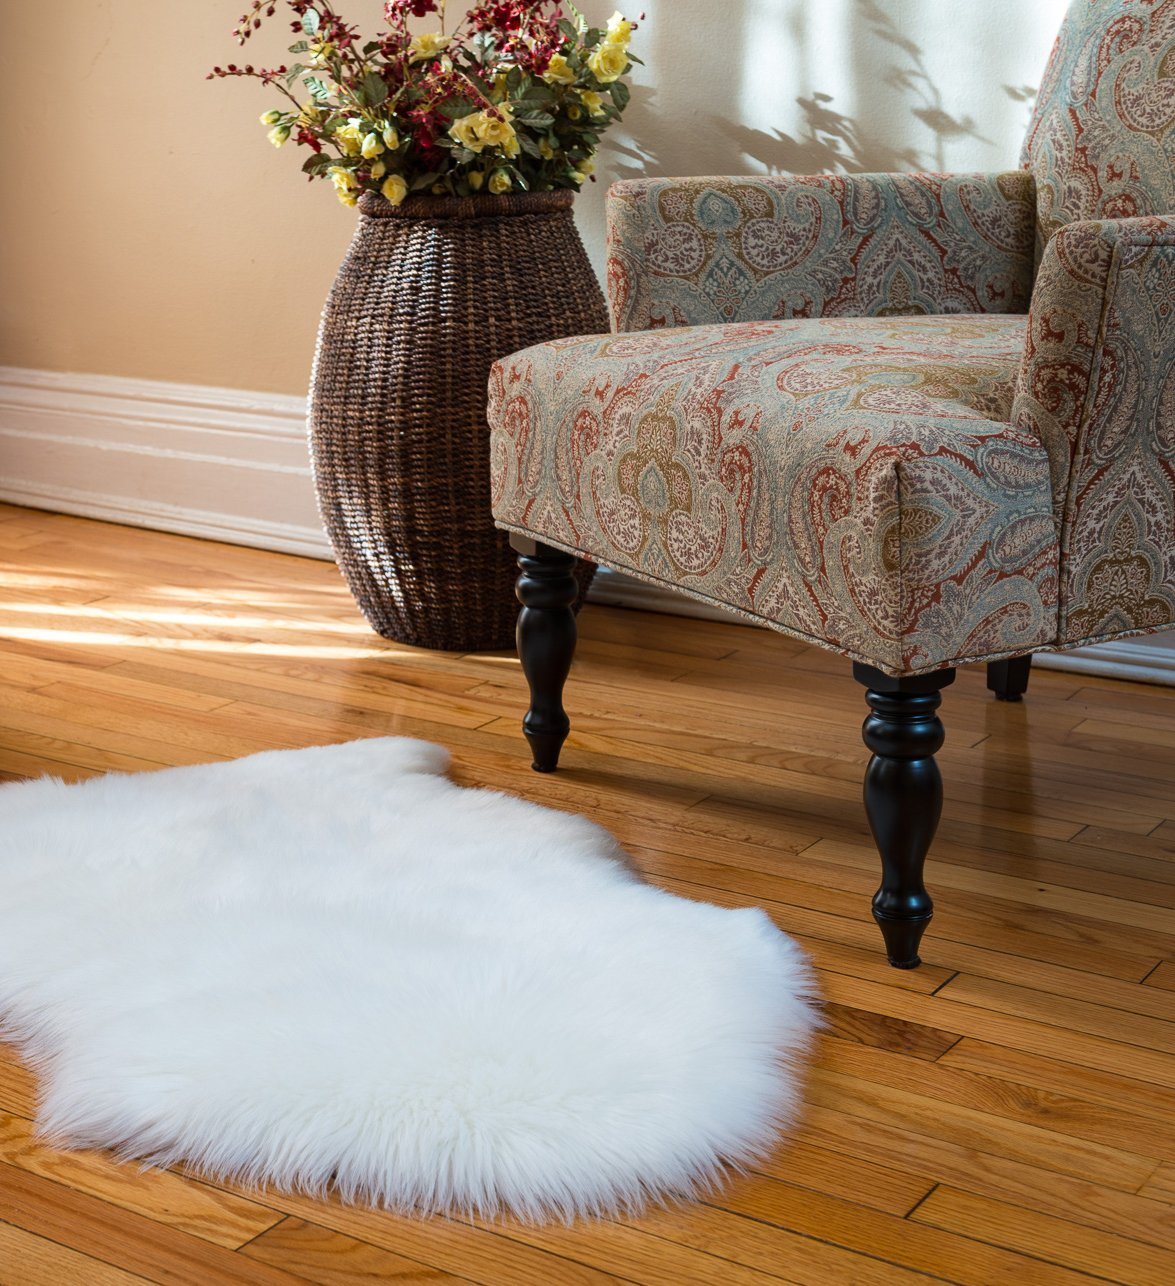 Faux Fur Sheepskin Rug, Ivory, 2ft X 3ft With Thick Pile